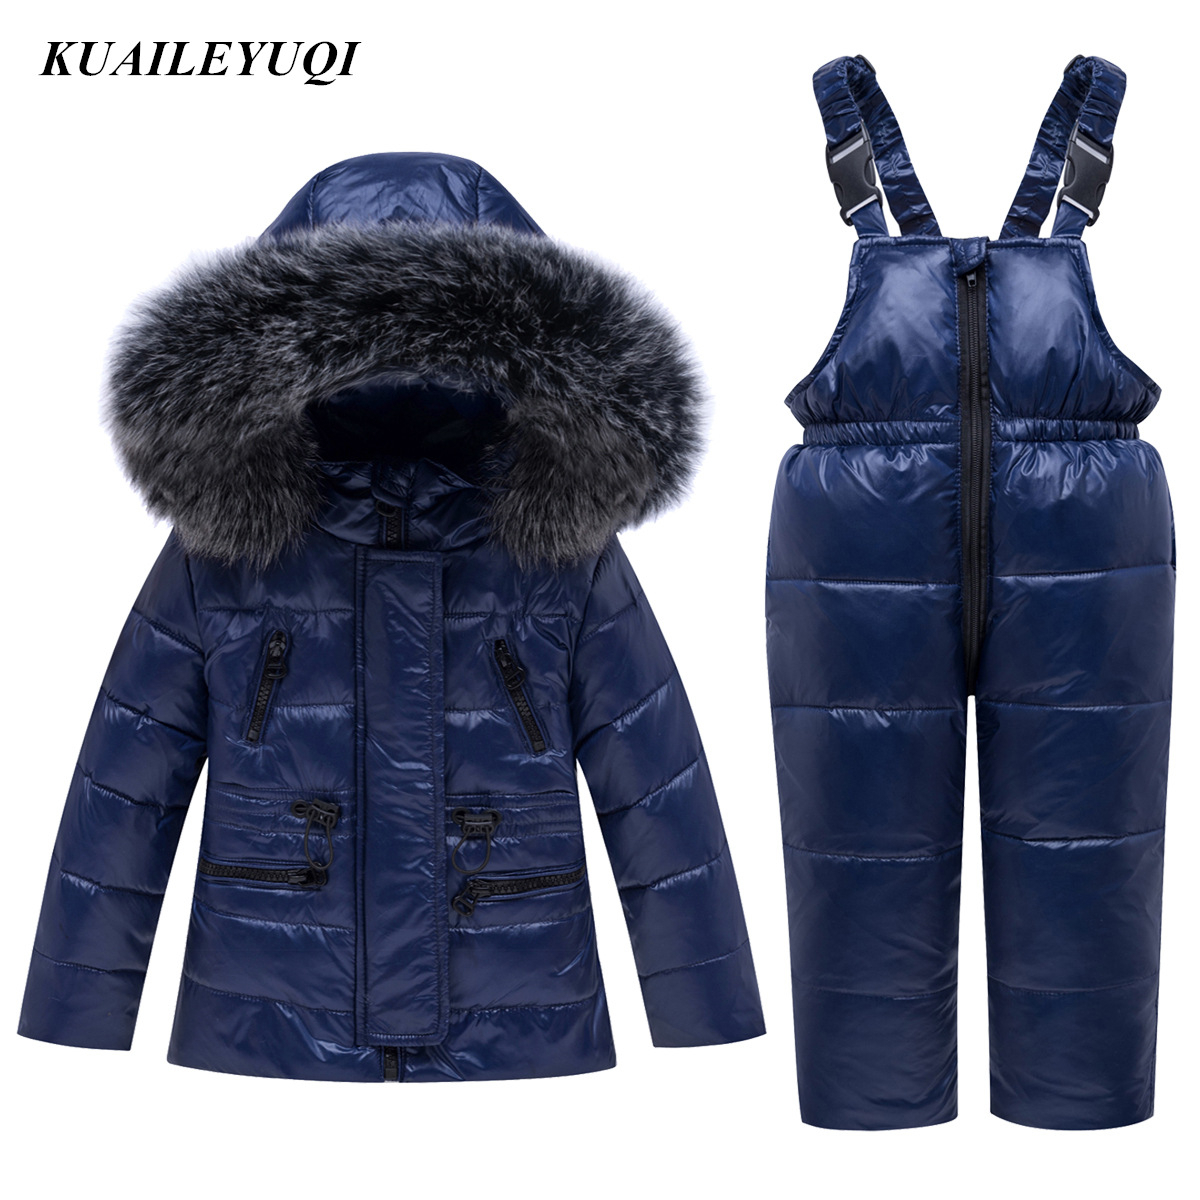 2019 New Winter Warm Baby Boys Duck Down Jacket Coat Children Parka Real Fur Collar Kids Ski Clothing Set Toddler Girl Clothes